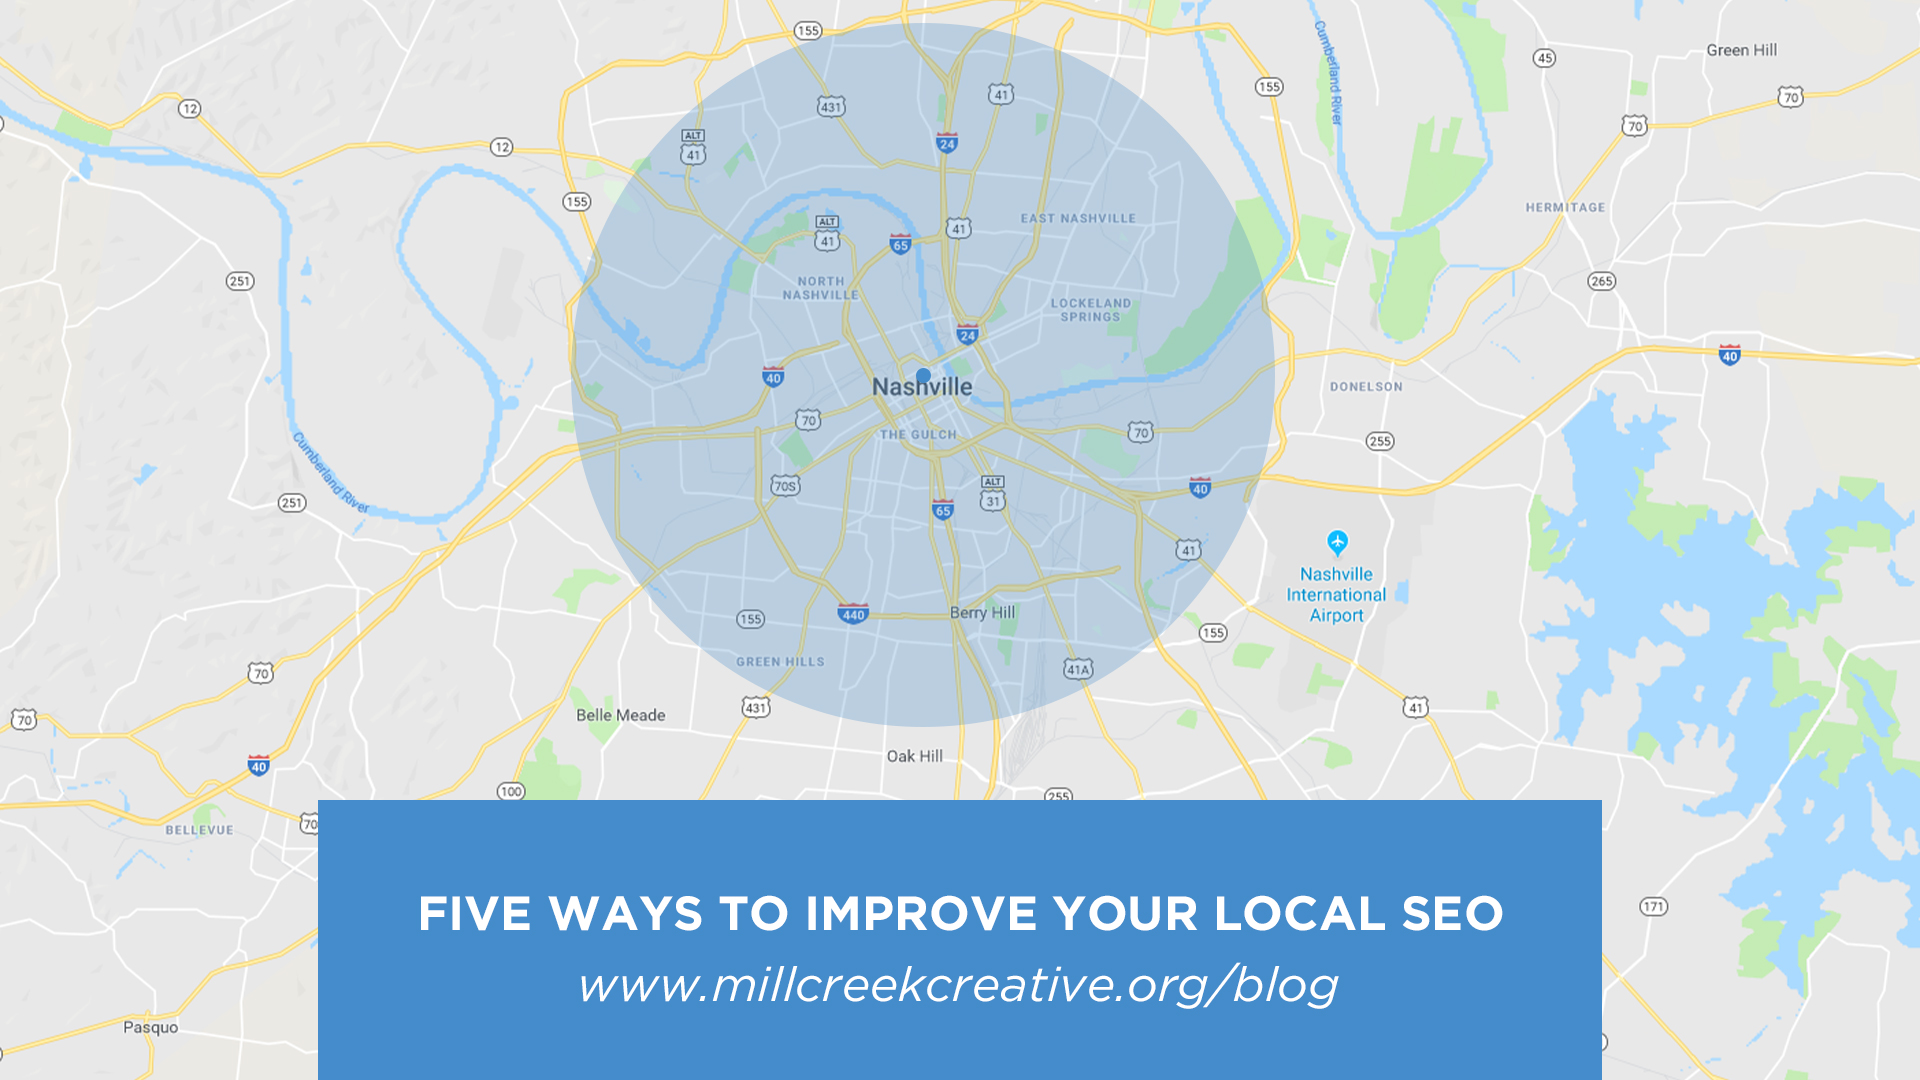 Five Ways To Improve Your Local SEO | Mill Creek Creative